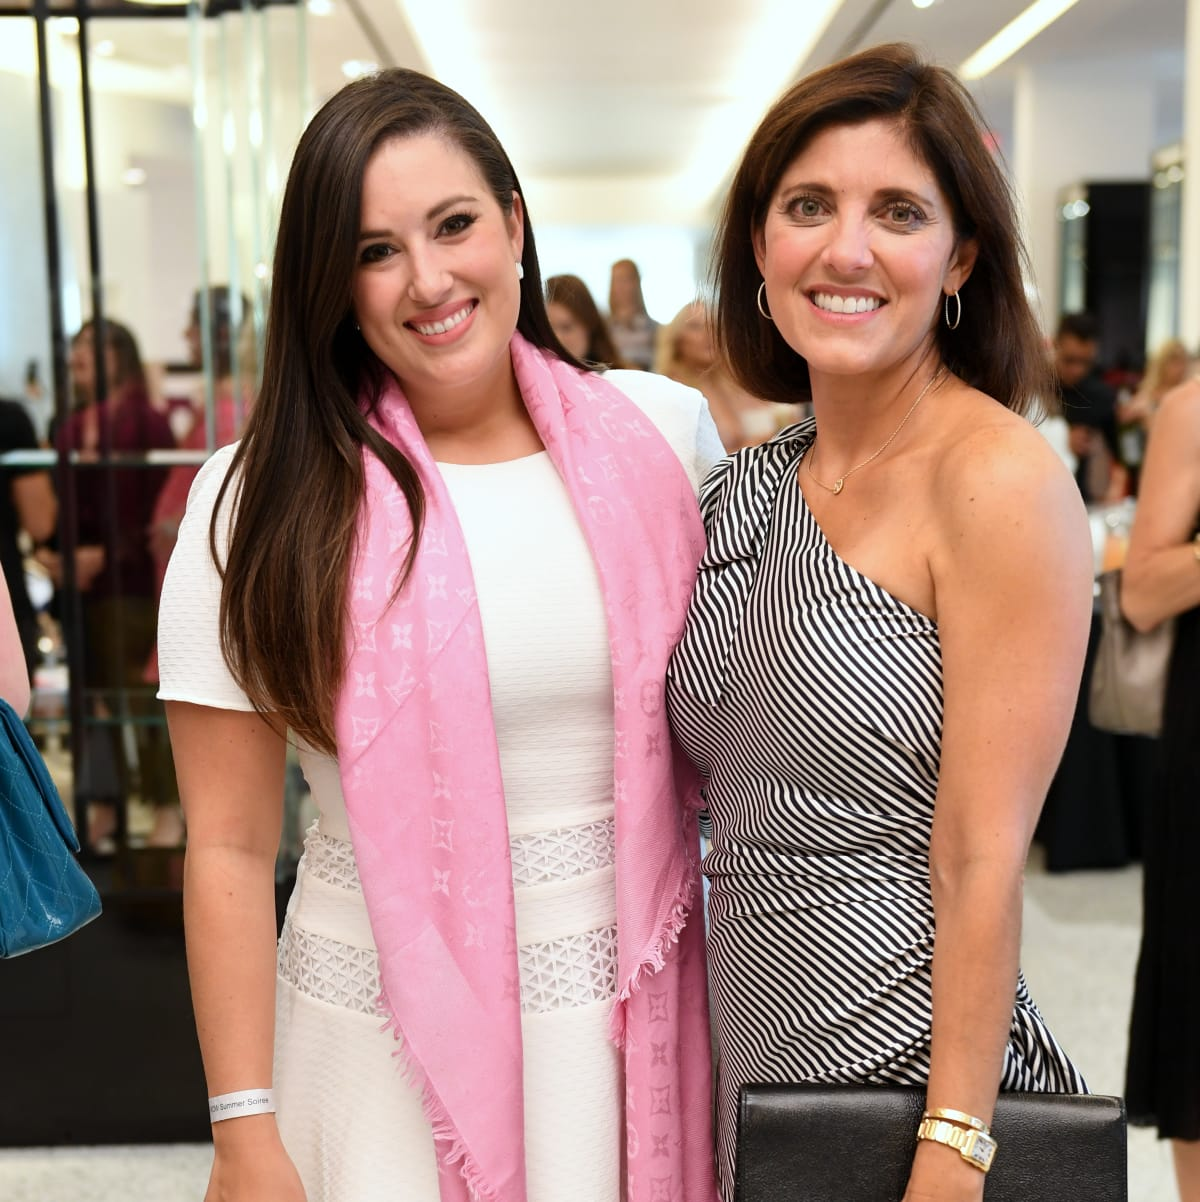 Houston, Women of Wardrobe Summer Soiree, August 2017, Brittany Rose, Stacey Lindseth